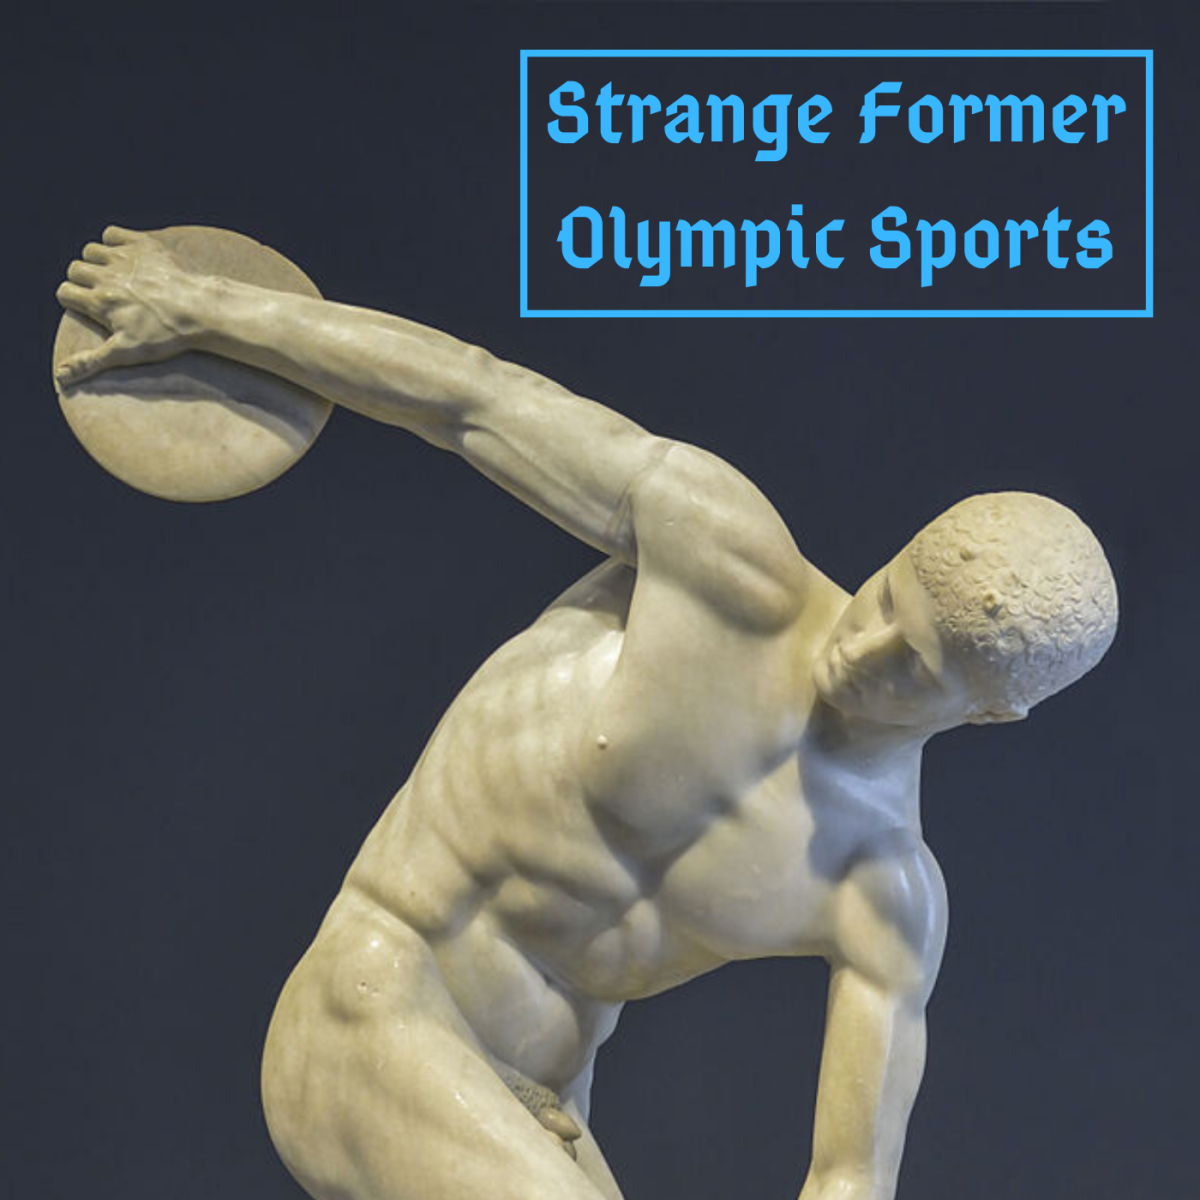 Most people know that new sports are periodically added to the Olympic Games, but few remember those that have been removed from the elite competition's pantheon.